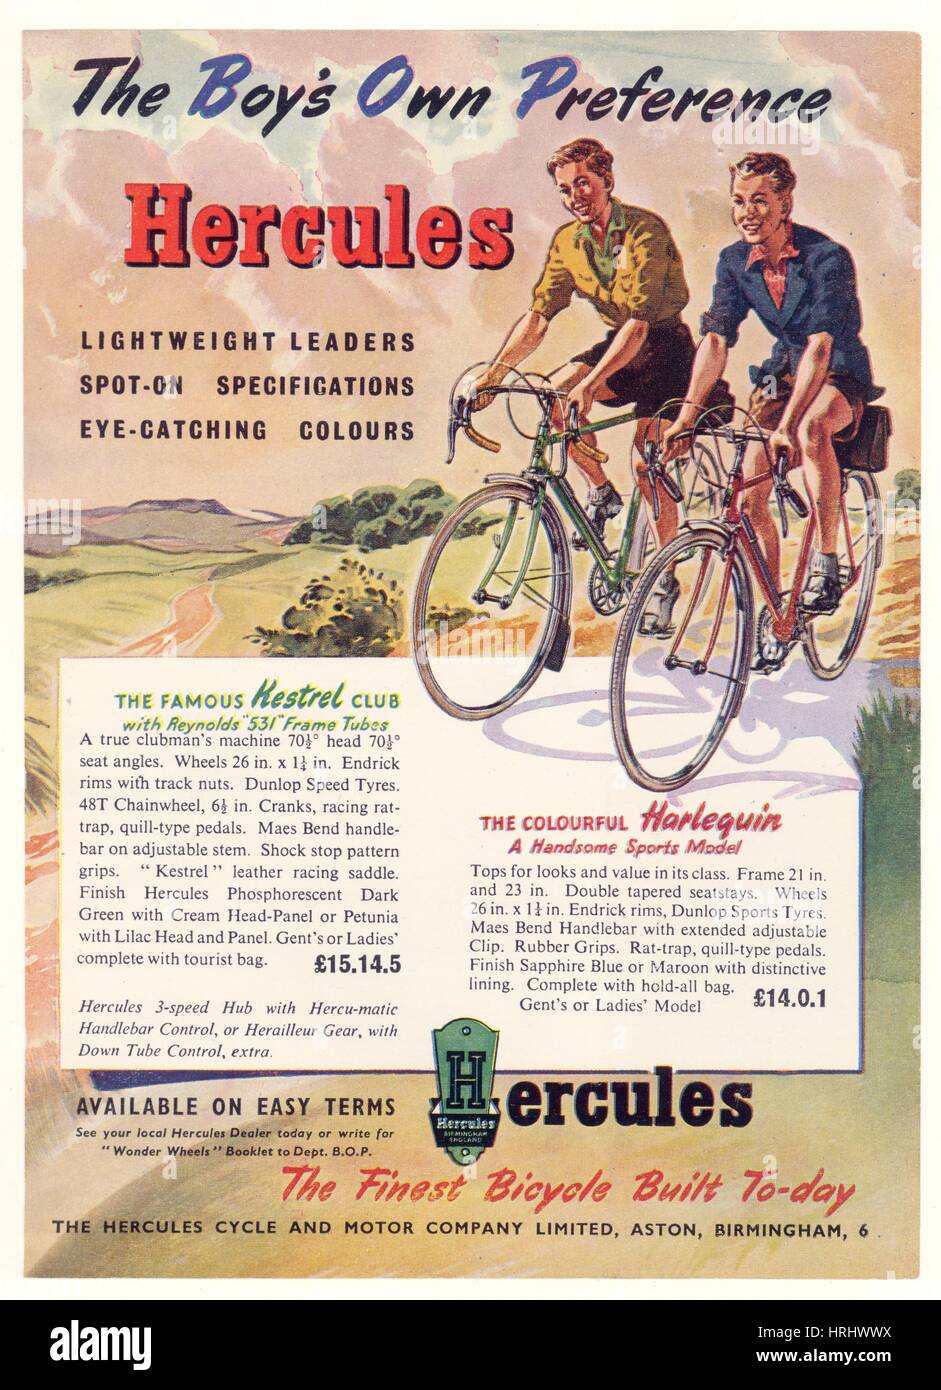 Advertisement leaflet for Hercules cycles 1950's, U.K. - Stock Image